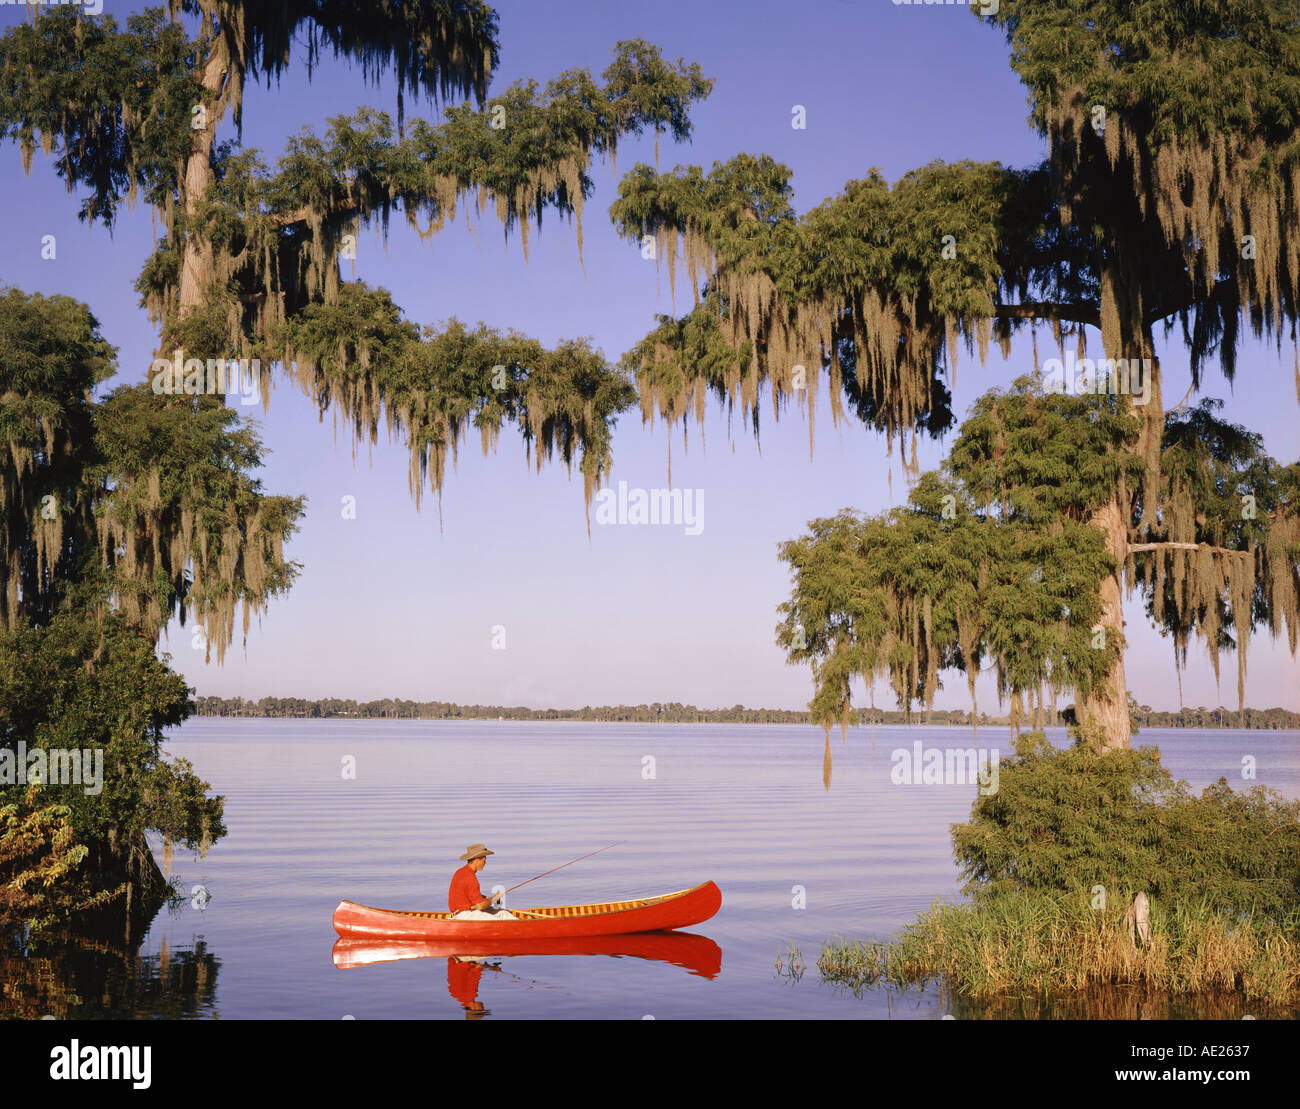 man fishing from canoe in Florida lake by Cypress trees